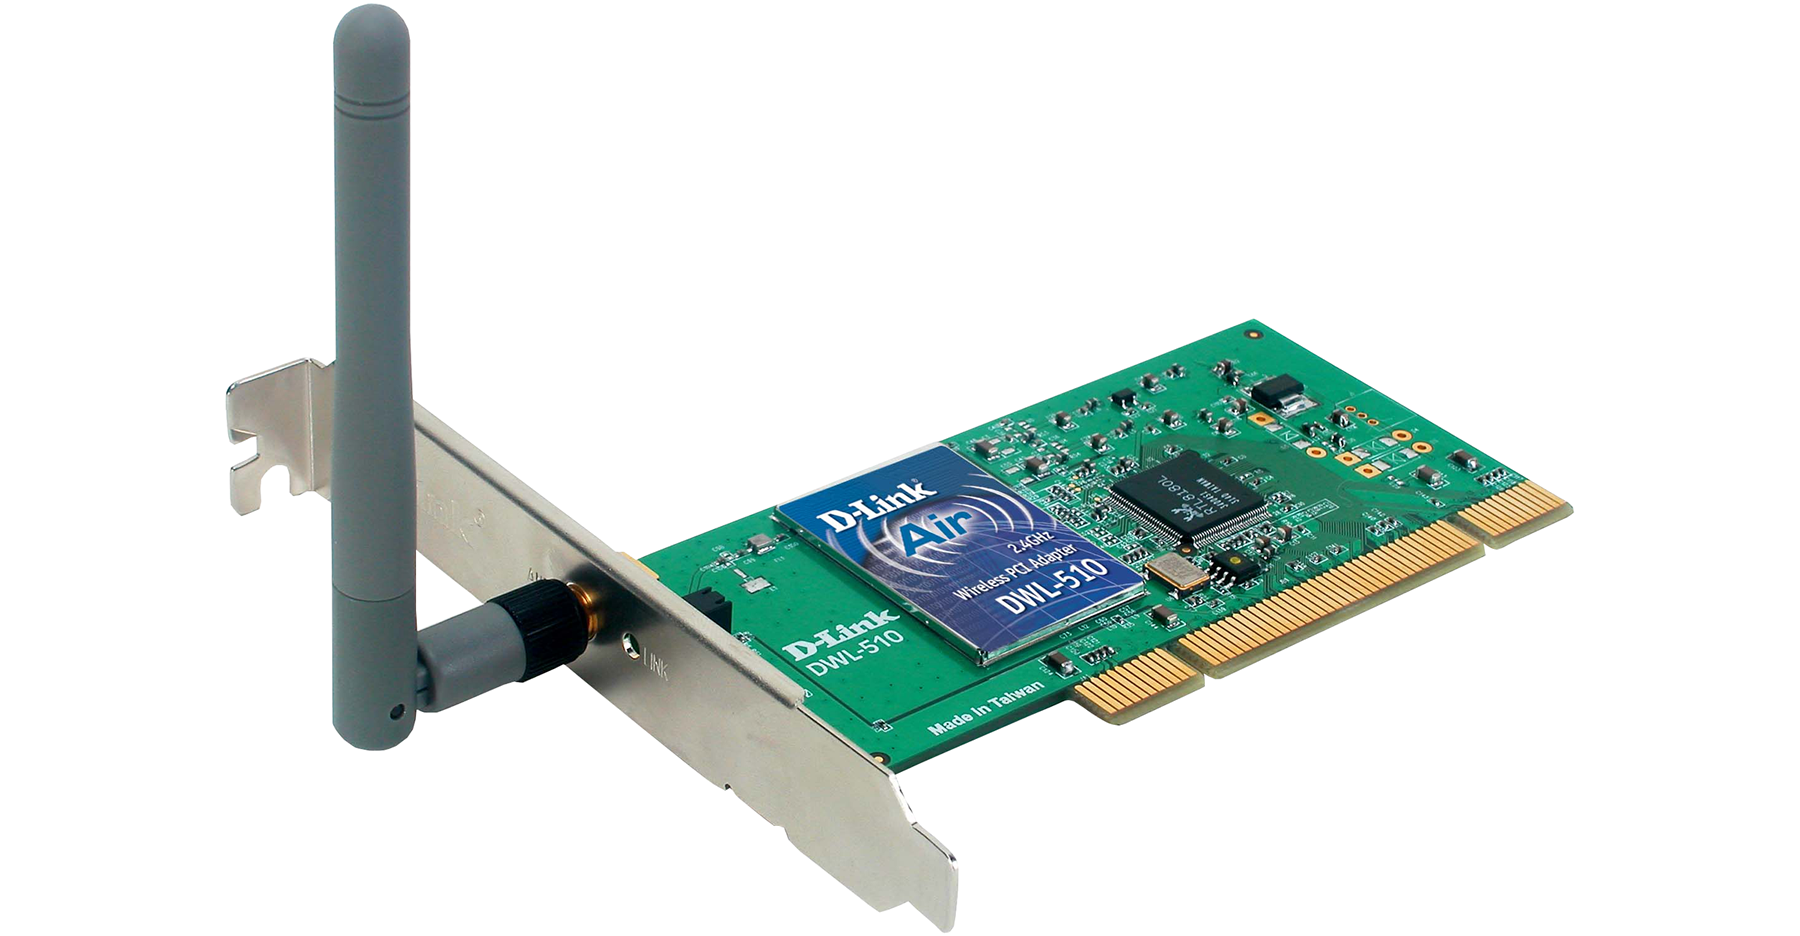 D LINK AIRPLUS G DWL G510 WIRELESS PCI CARD WINDOWS 7 64BIT DRIVER